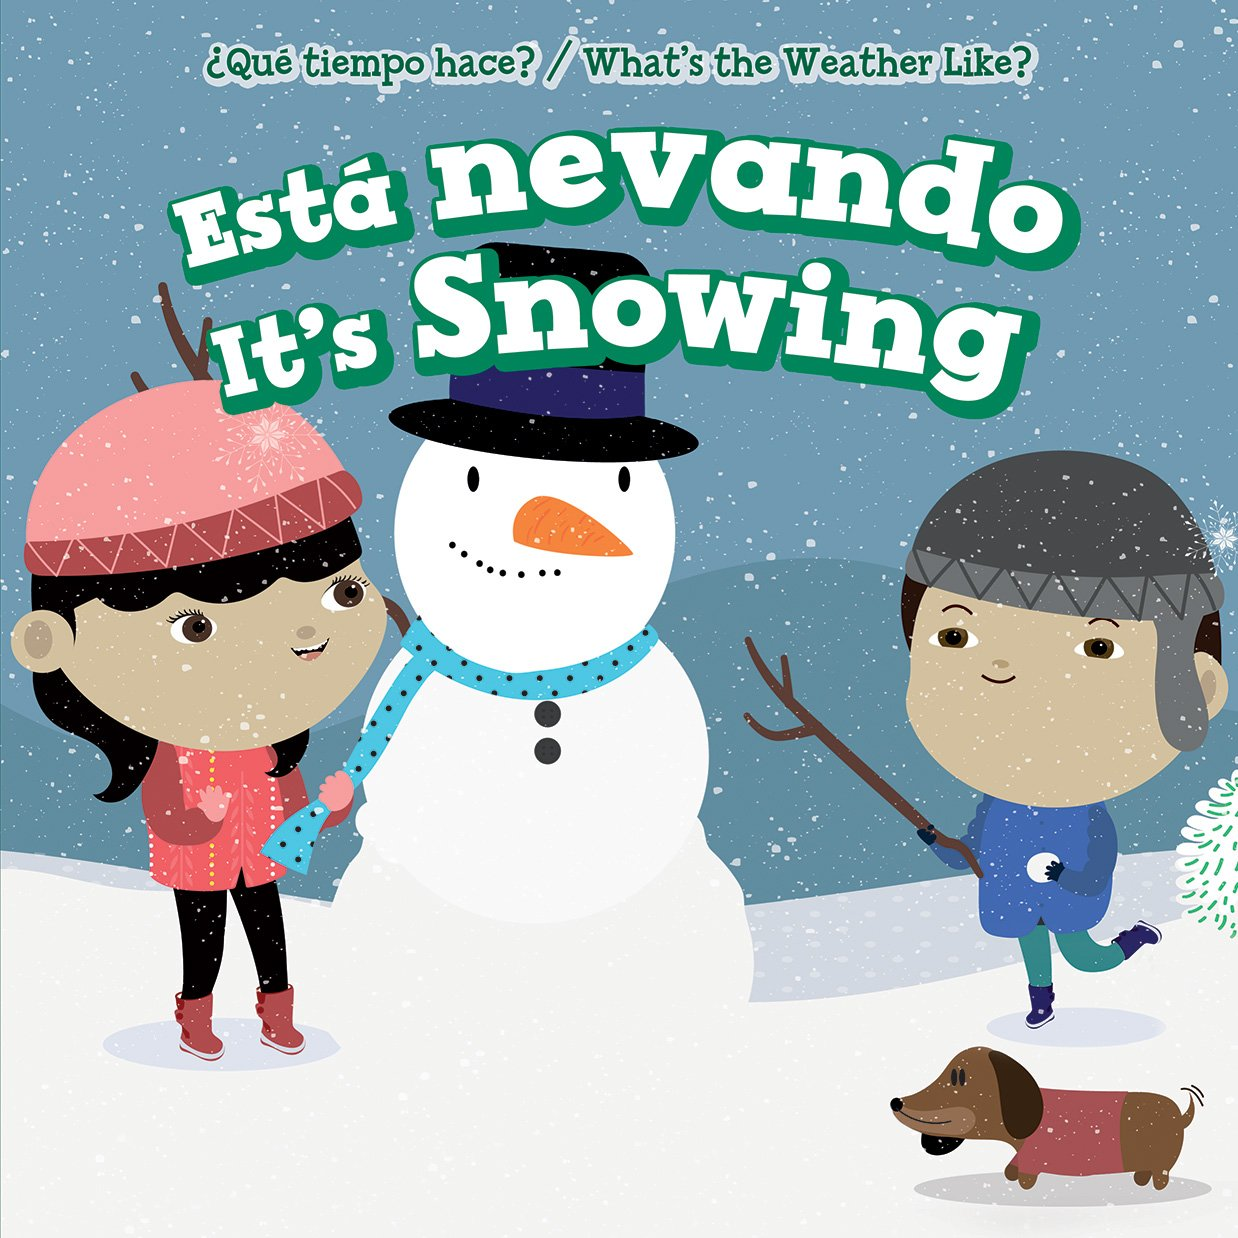 Esta Nevando / It's Snowing (Que Tiempo Hace? / What's The Weather Like?) (Spanish and English Edition) pdf epub